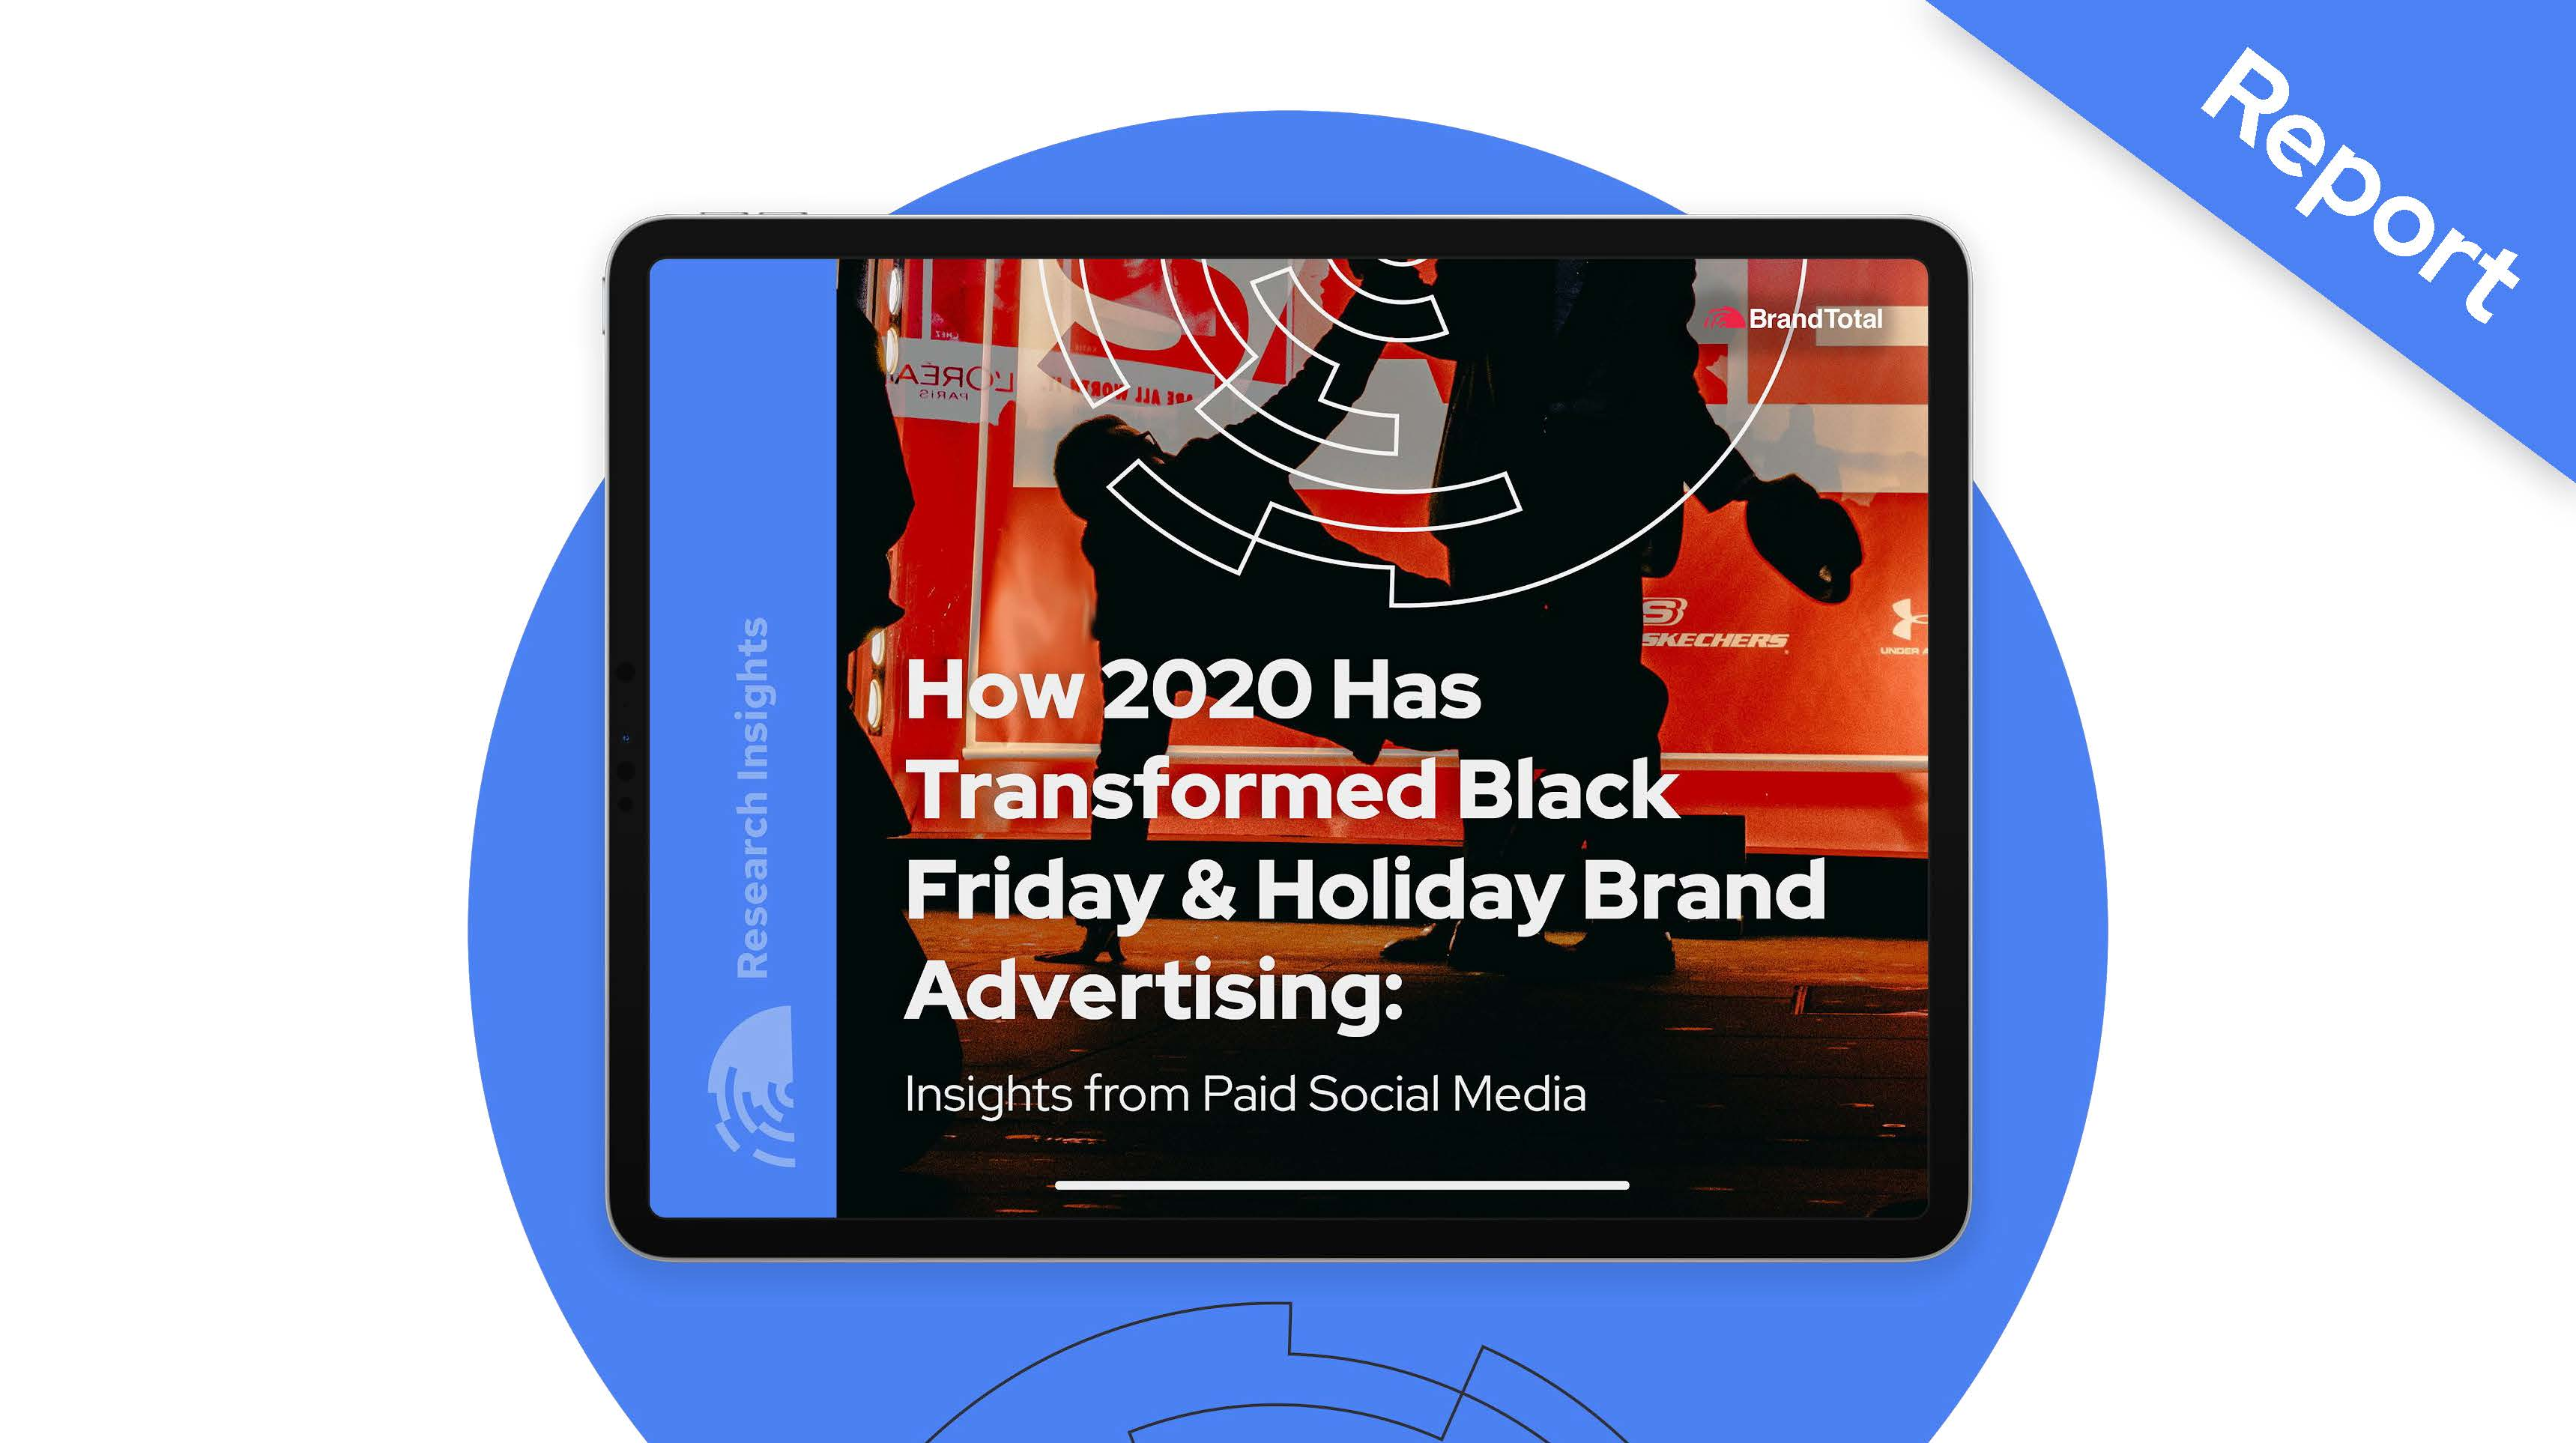 Research Report: How 2020 Has Transformed Black Friday & Holiday Brand Advertising